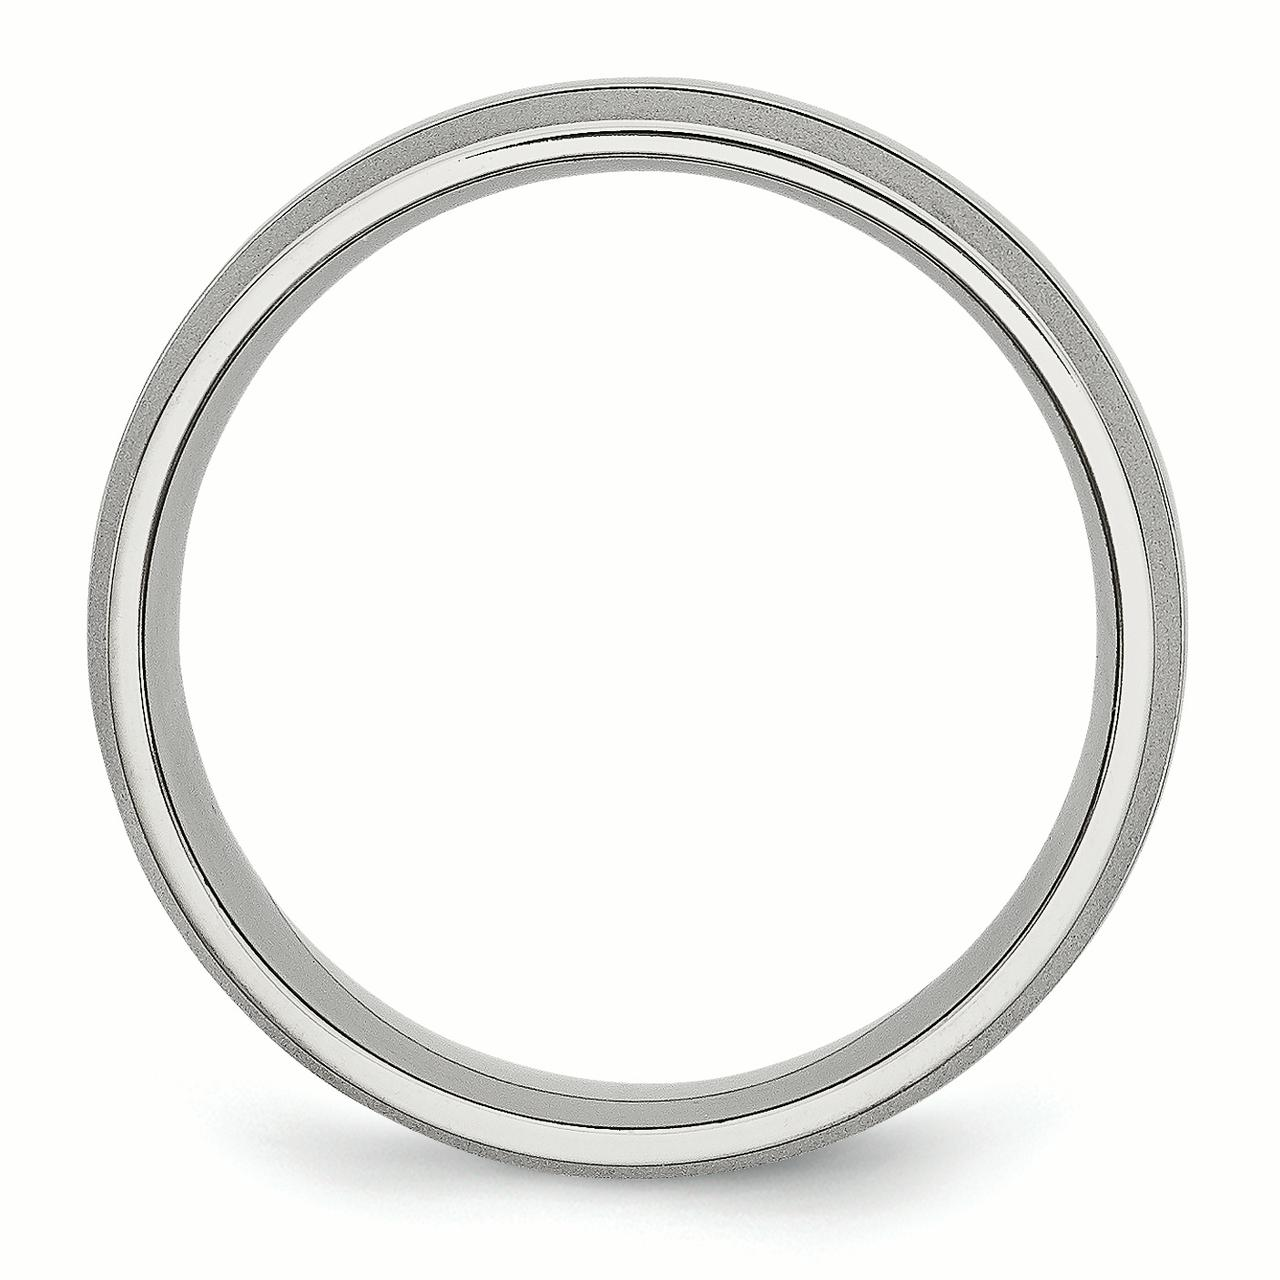 Stainless Steel Grooved 8mm Brushed and Polished Band Size 13.5 - image 1 of 3